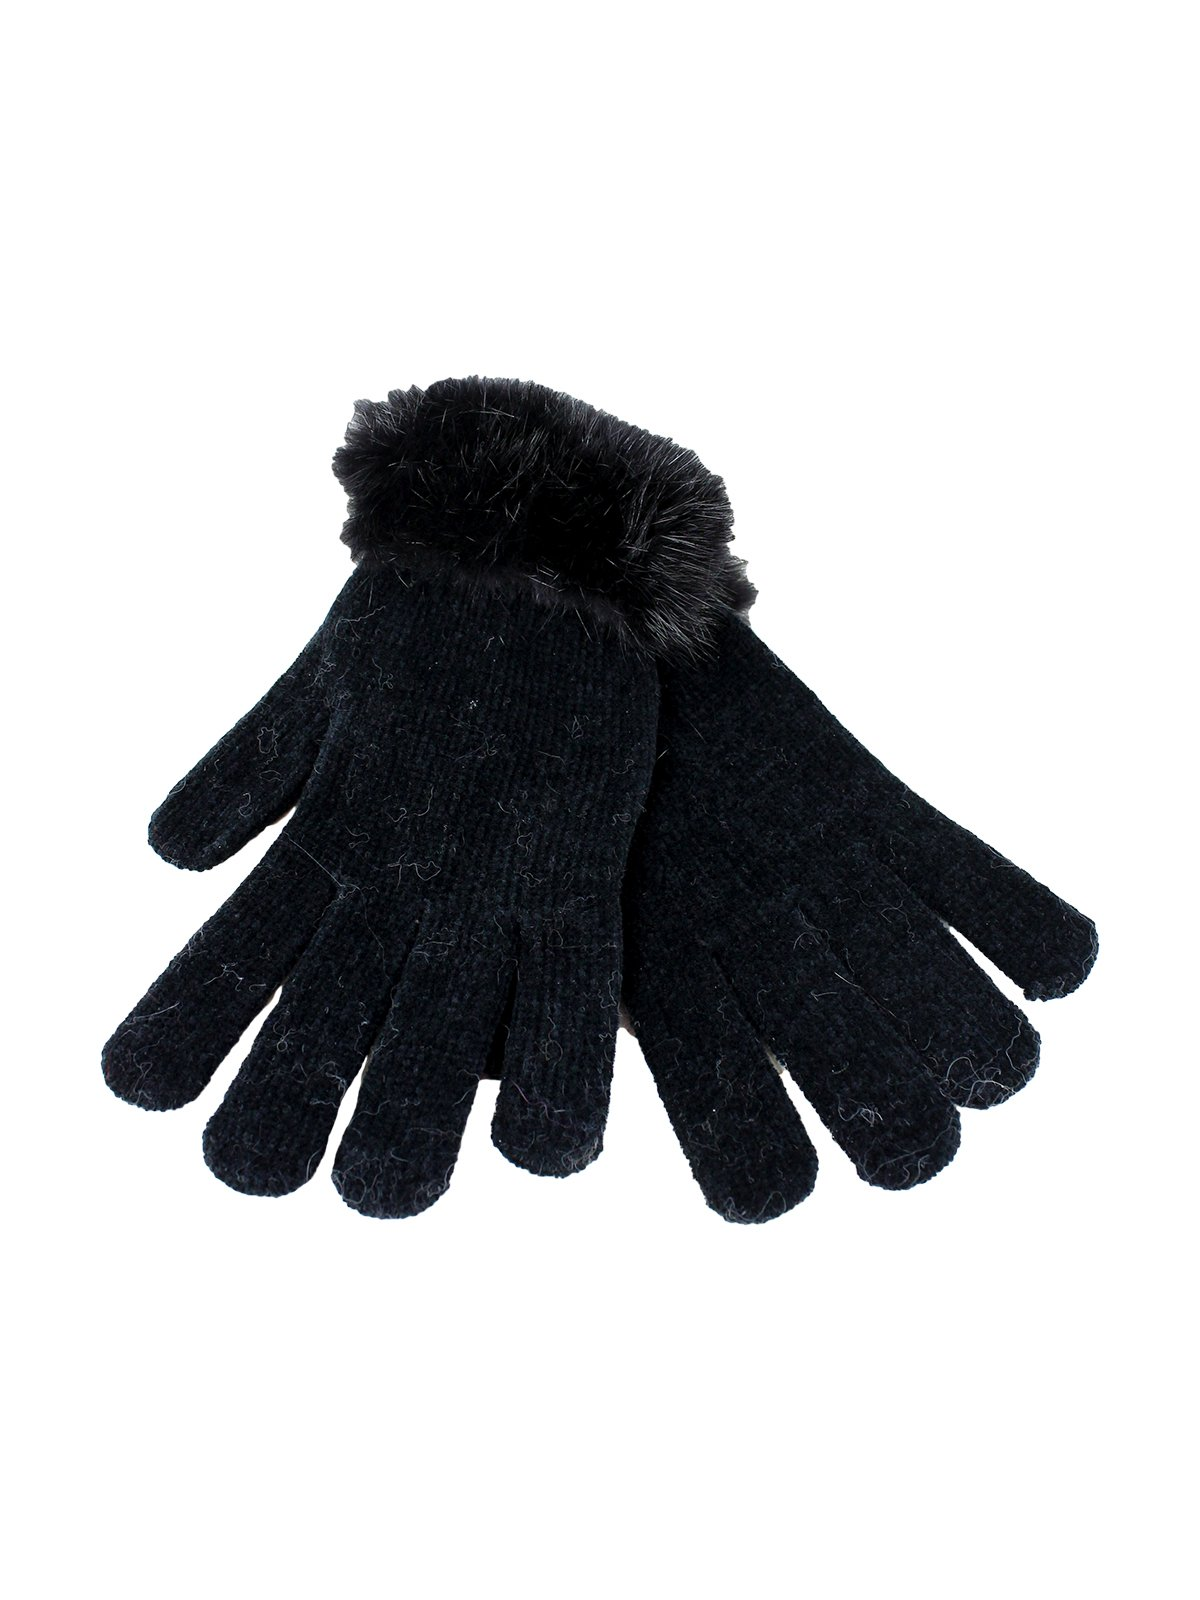 Woman's Black Knit Chenille Gloves